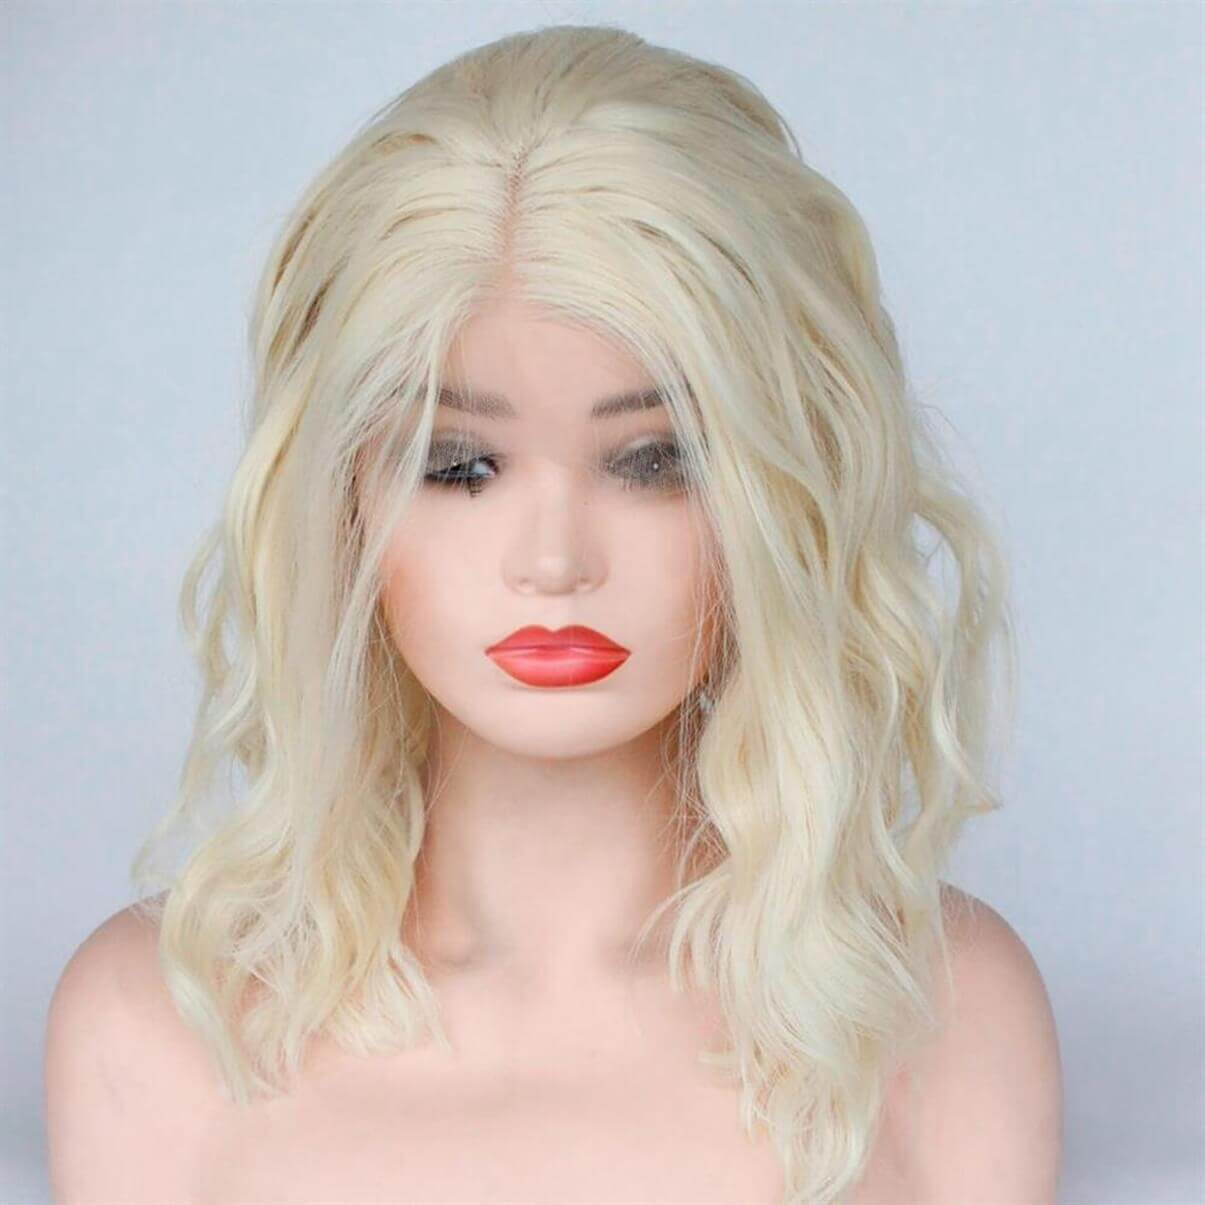 Lakihair 613 Blonde Body Wave Short Lace Front Human Hair Wigs Blonde Short Bob Lace Wigs Brazilian Virgin Human Hair 180% Density Pre Plucked Hairline